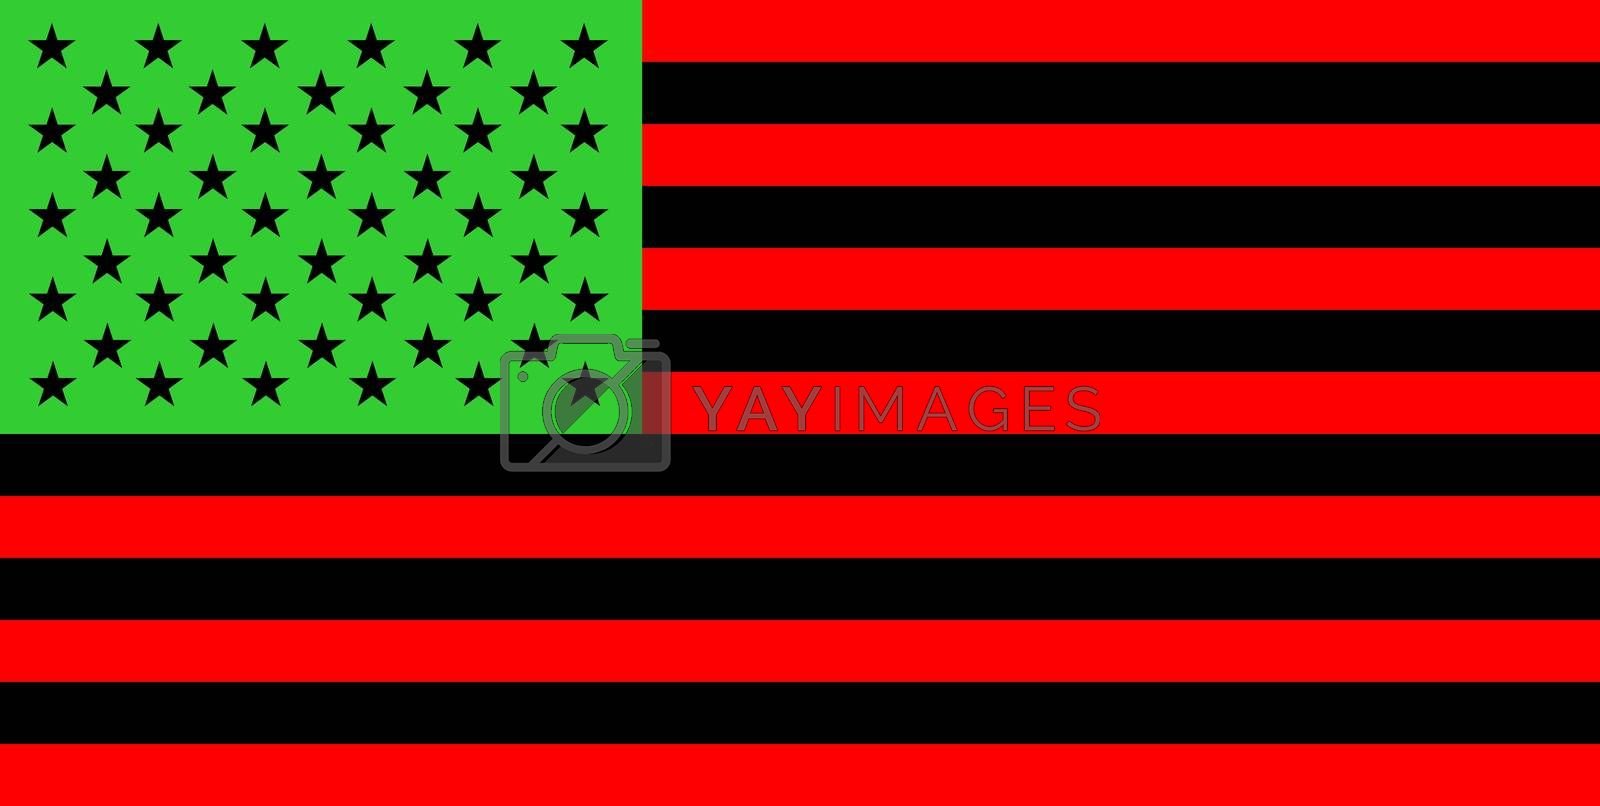 Royalty free image of Afro-American people flag by tony4urban